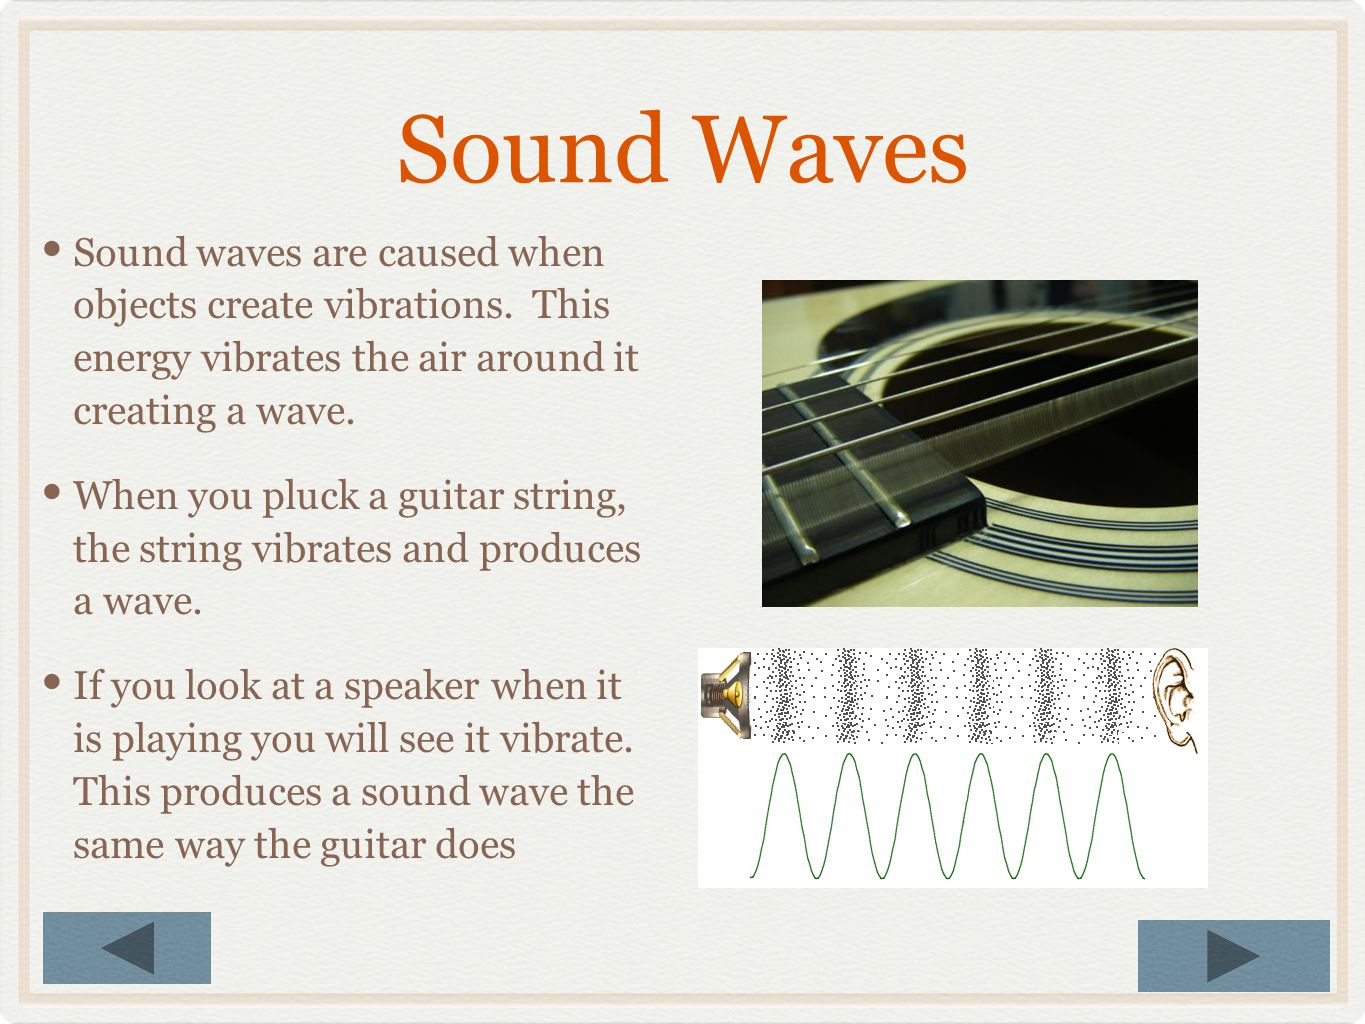 Sound Waves Sound waves are caused when objects create vibrations. This energy vibrates the air around it creating a wave.